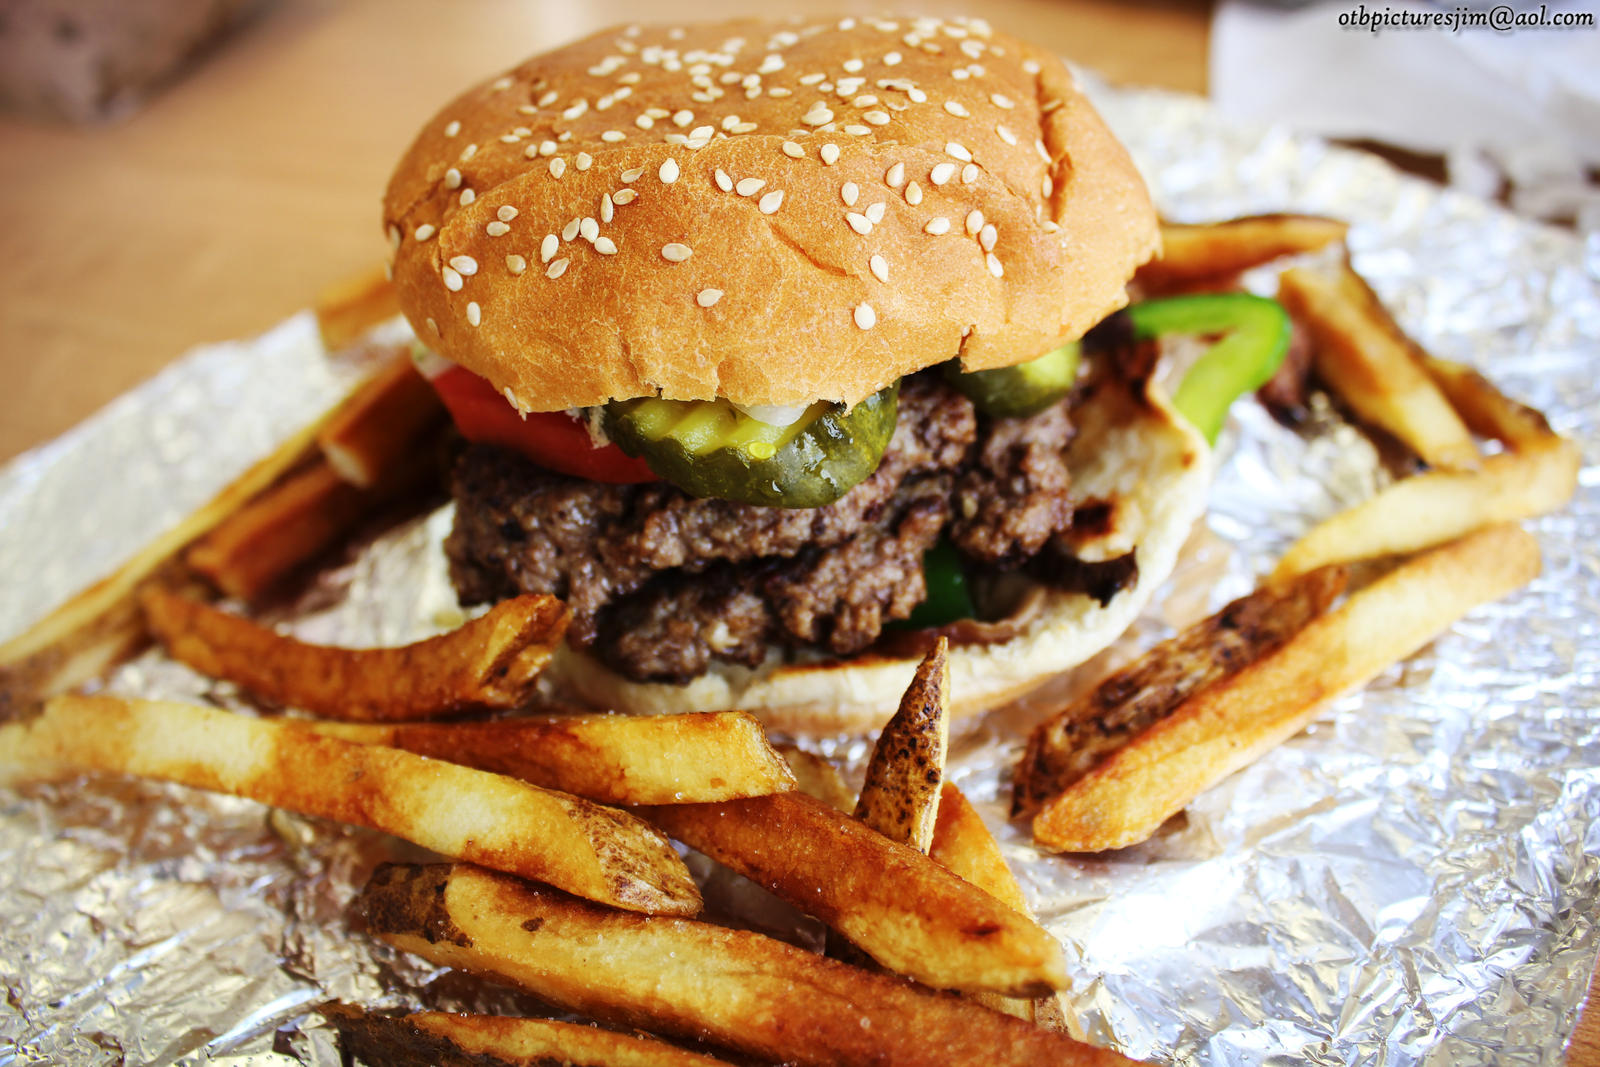 Most Unhealthy Restaurant Foods